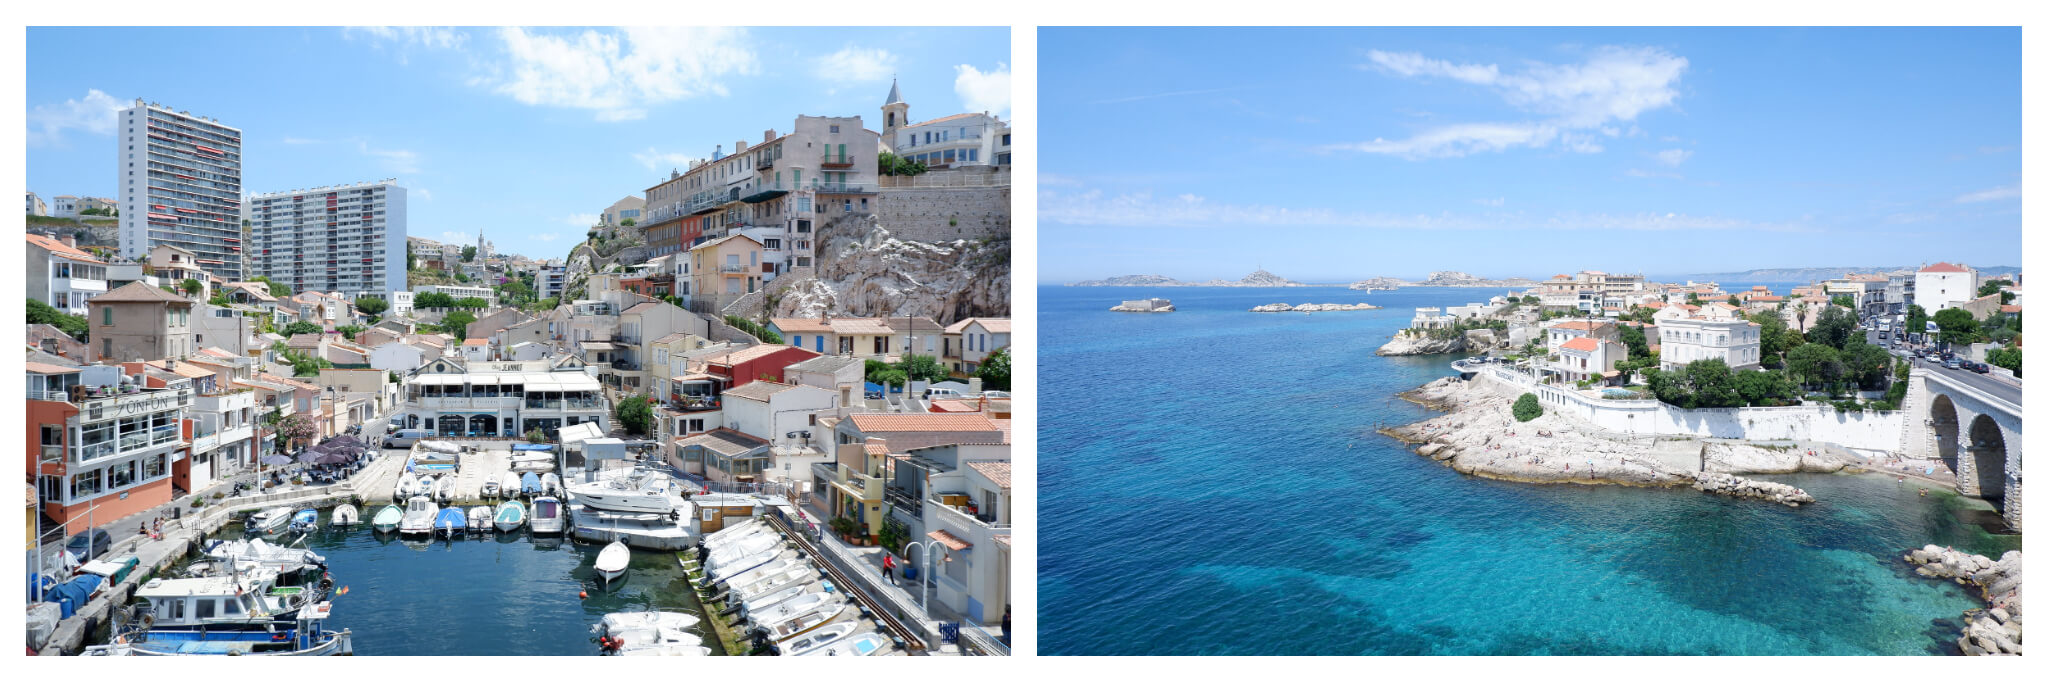 Left: A crowded port in Marseille  Right: The crystal blue Mediterranean Sea near Marseille on a sunny day.